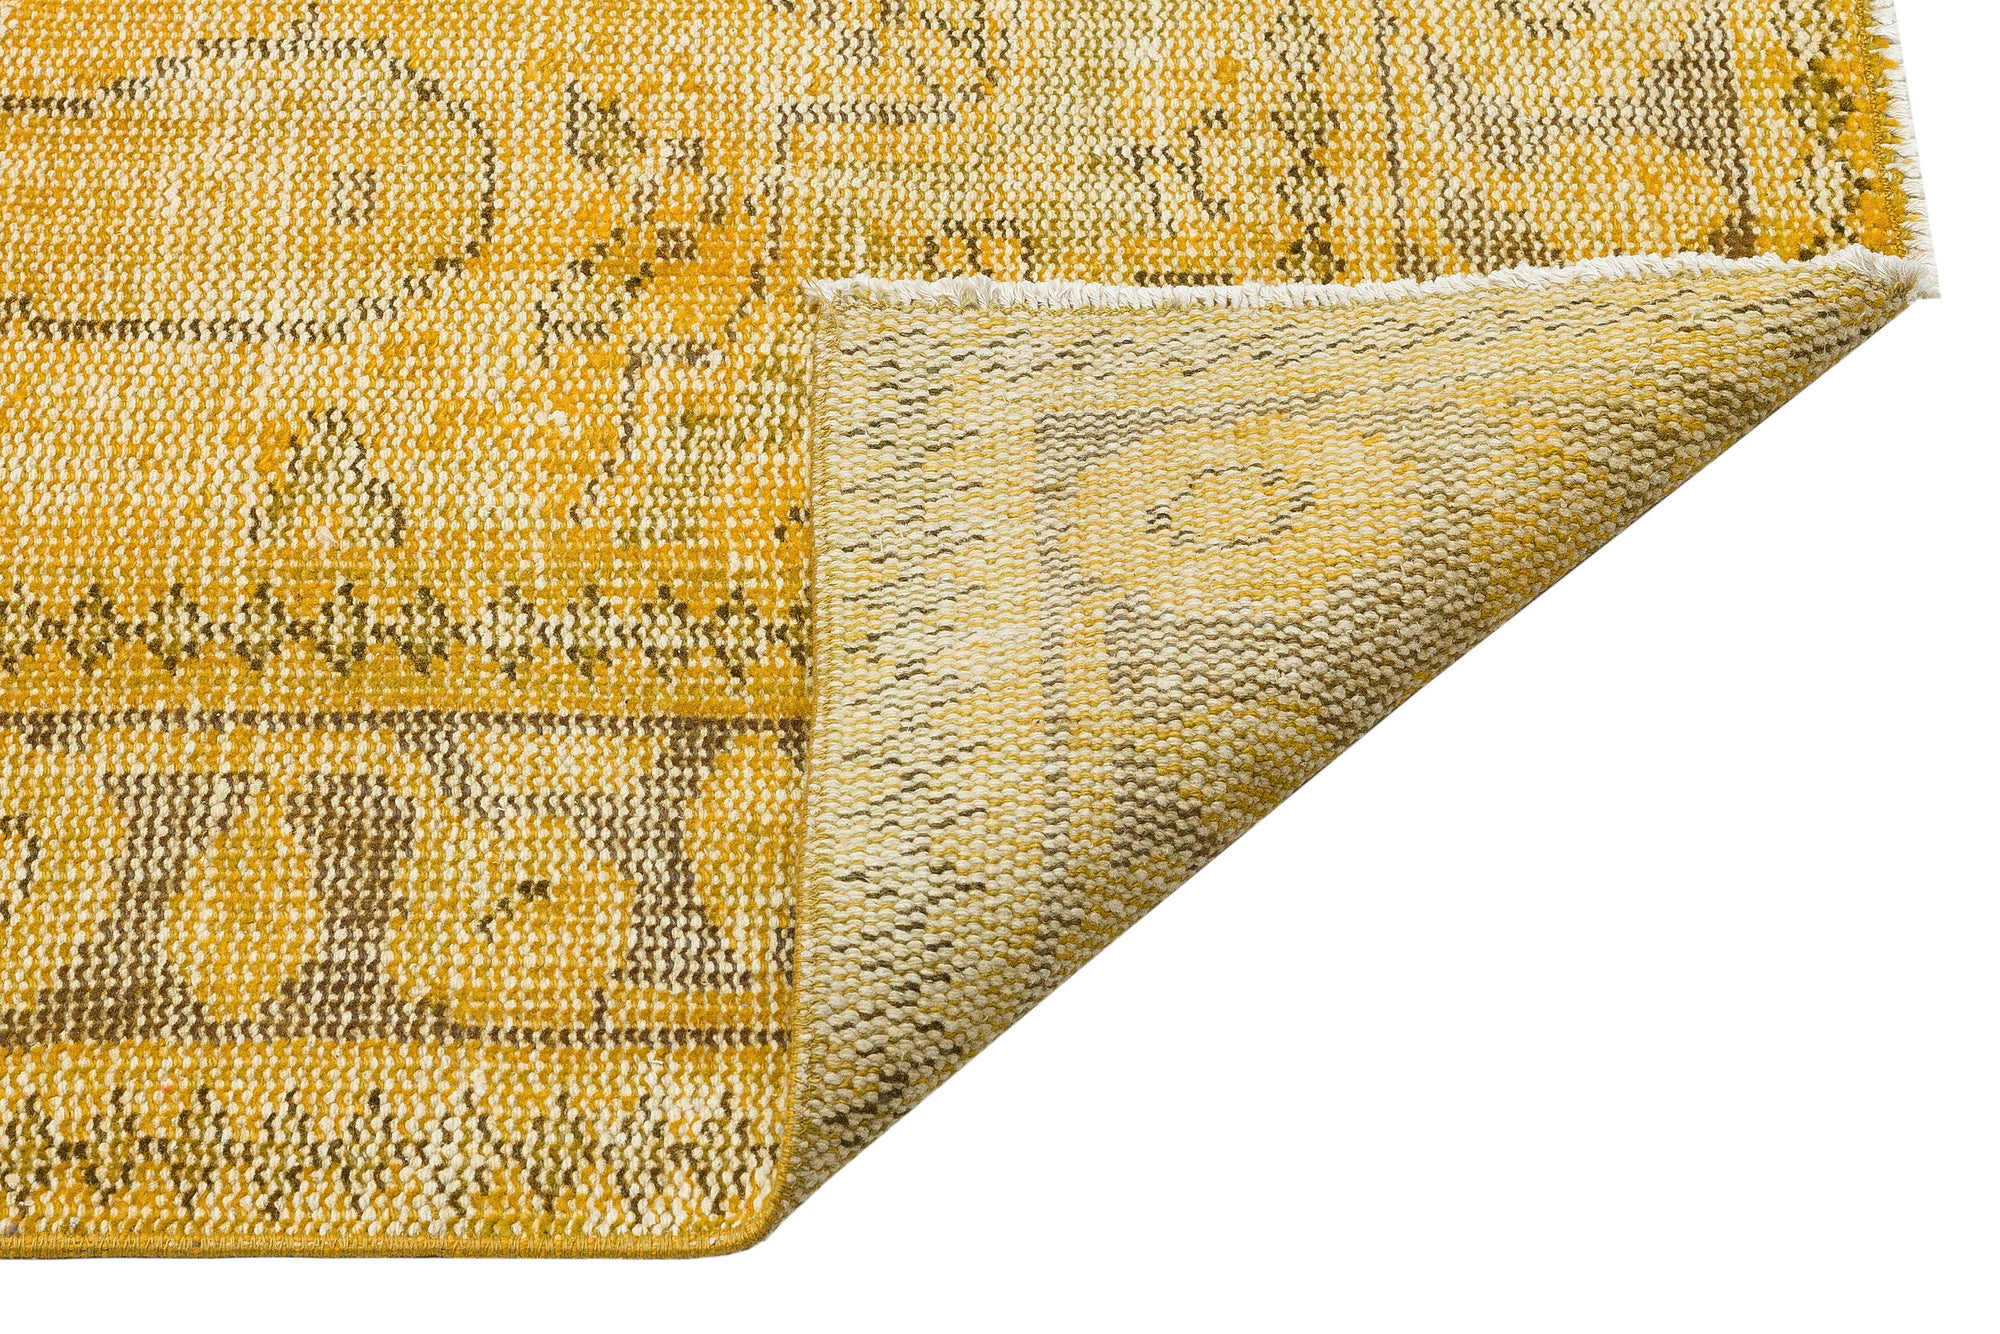 Yellow Over Dyed Vintage Rug 5'6'' x 9'5'' ft 168 x 287 cm